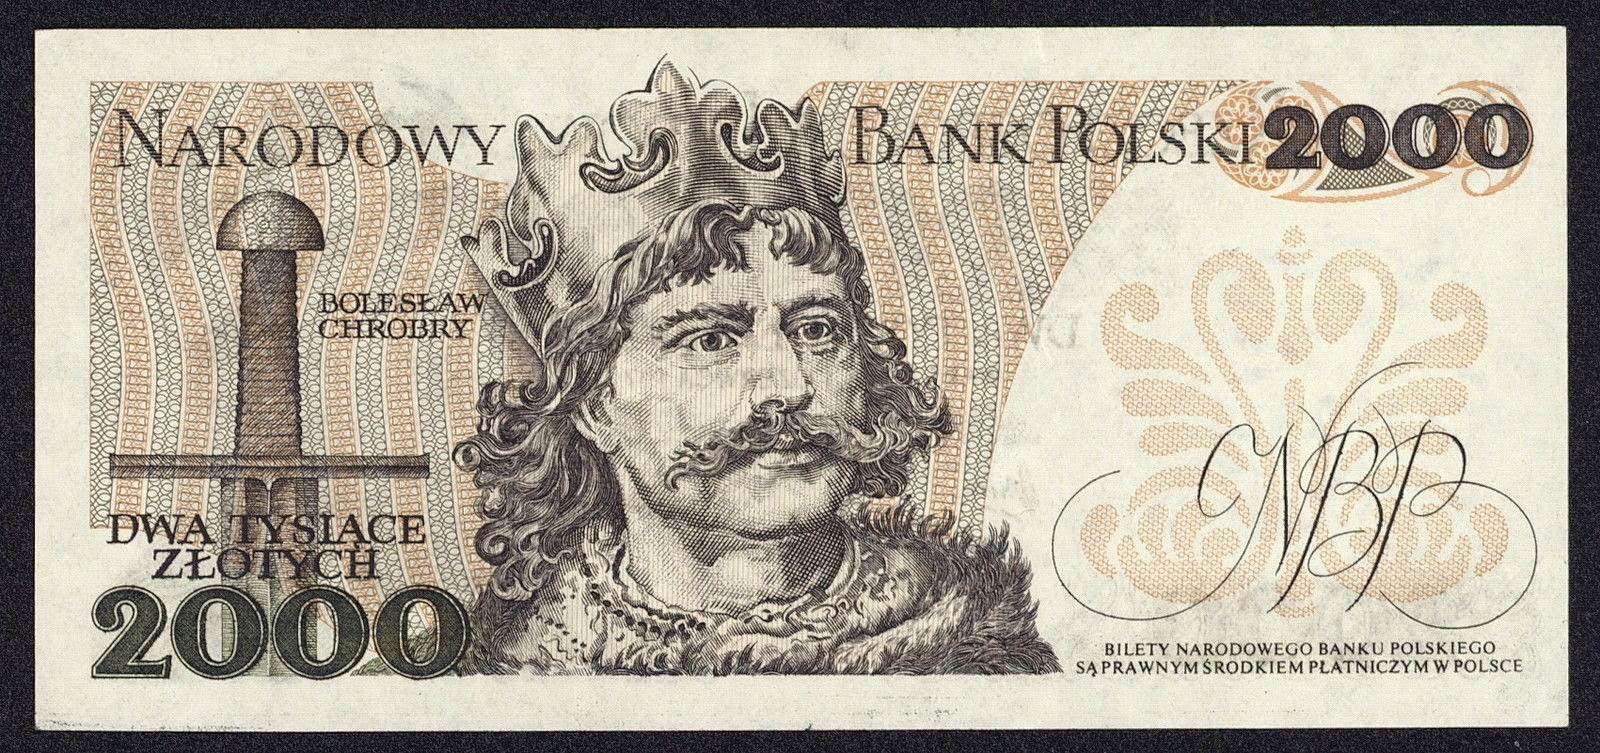 Poland Banknotes 2000 Zloty banknote 1979 Boleslaw the Brave, Duke and then first King of Poland